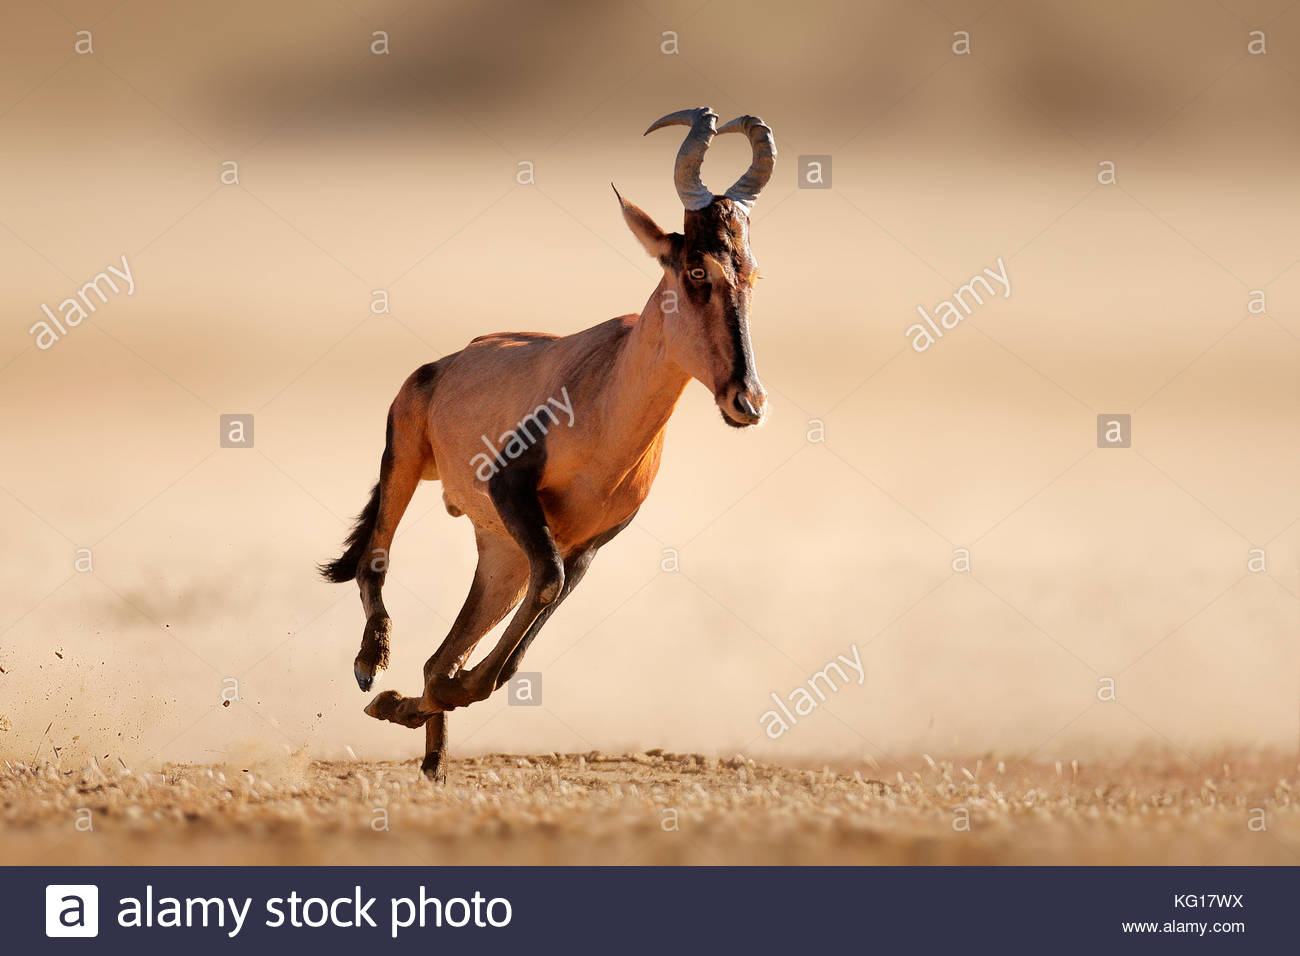 Red hartebeest (Alcelaphus caama) running full speed over sandy and dusty plains of kalahari desert - Kgalagadi - Stock Image